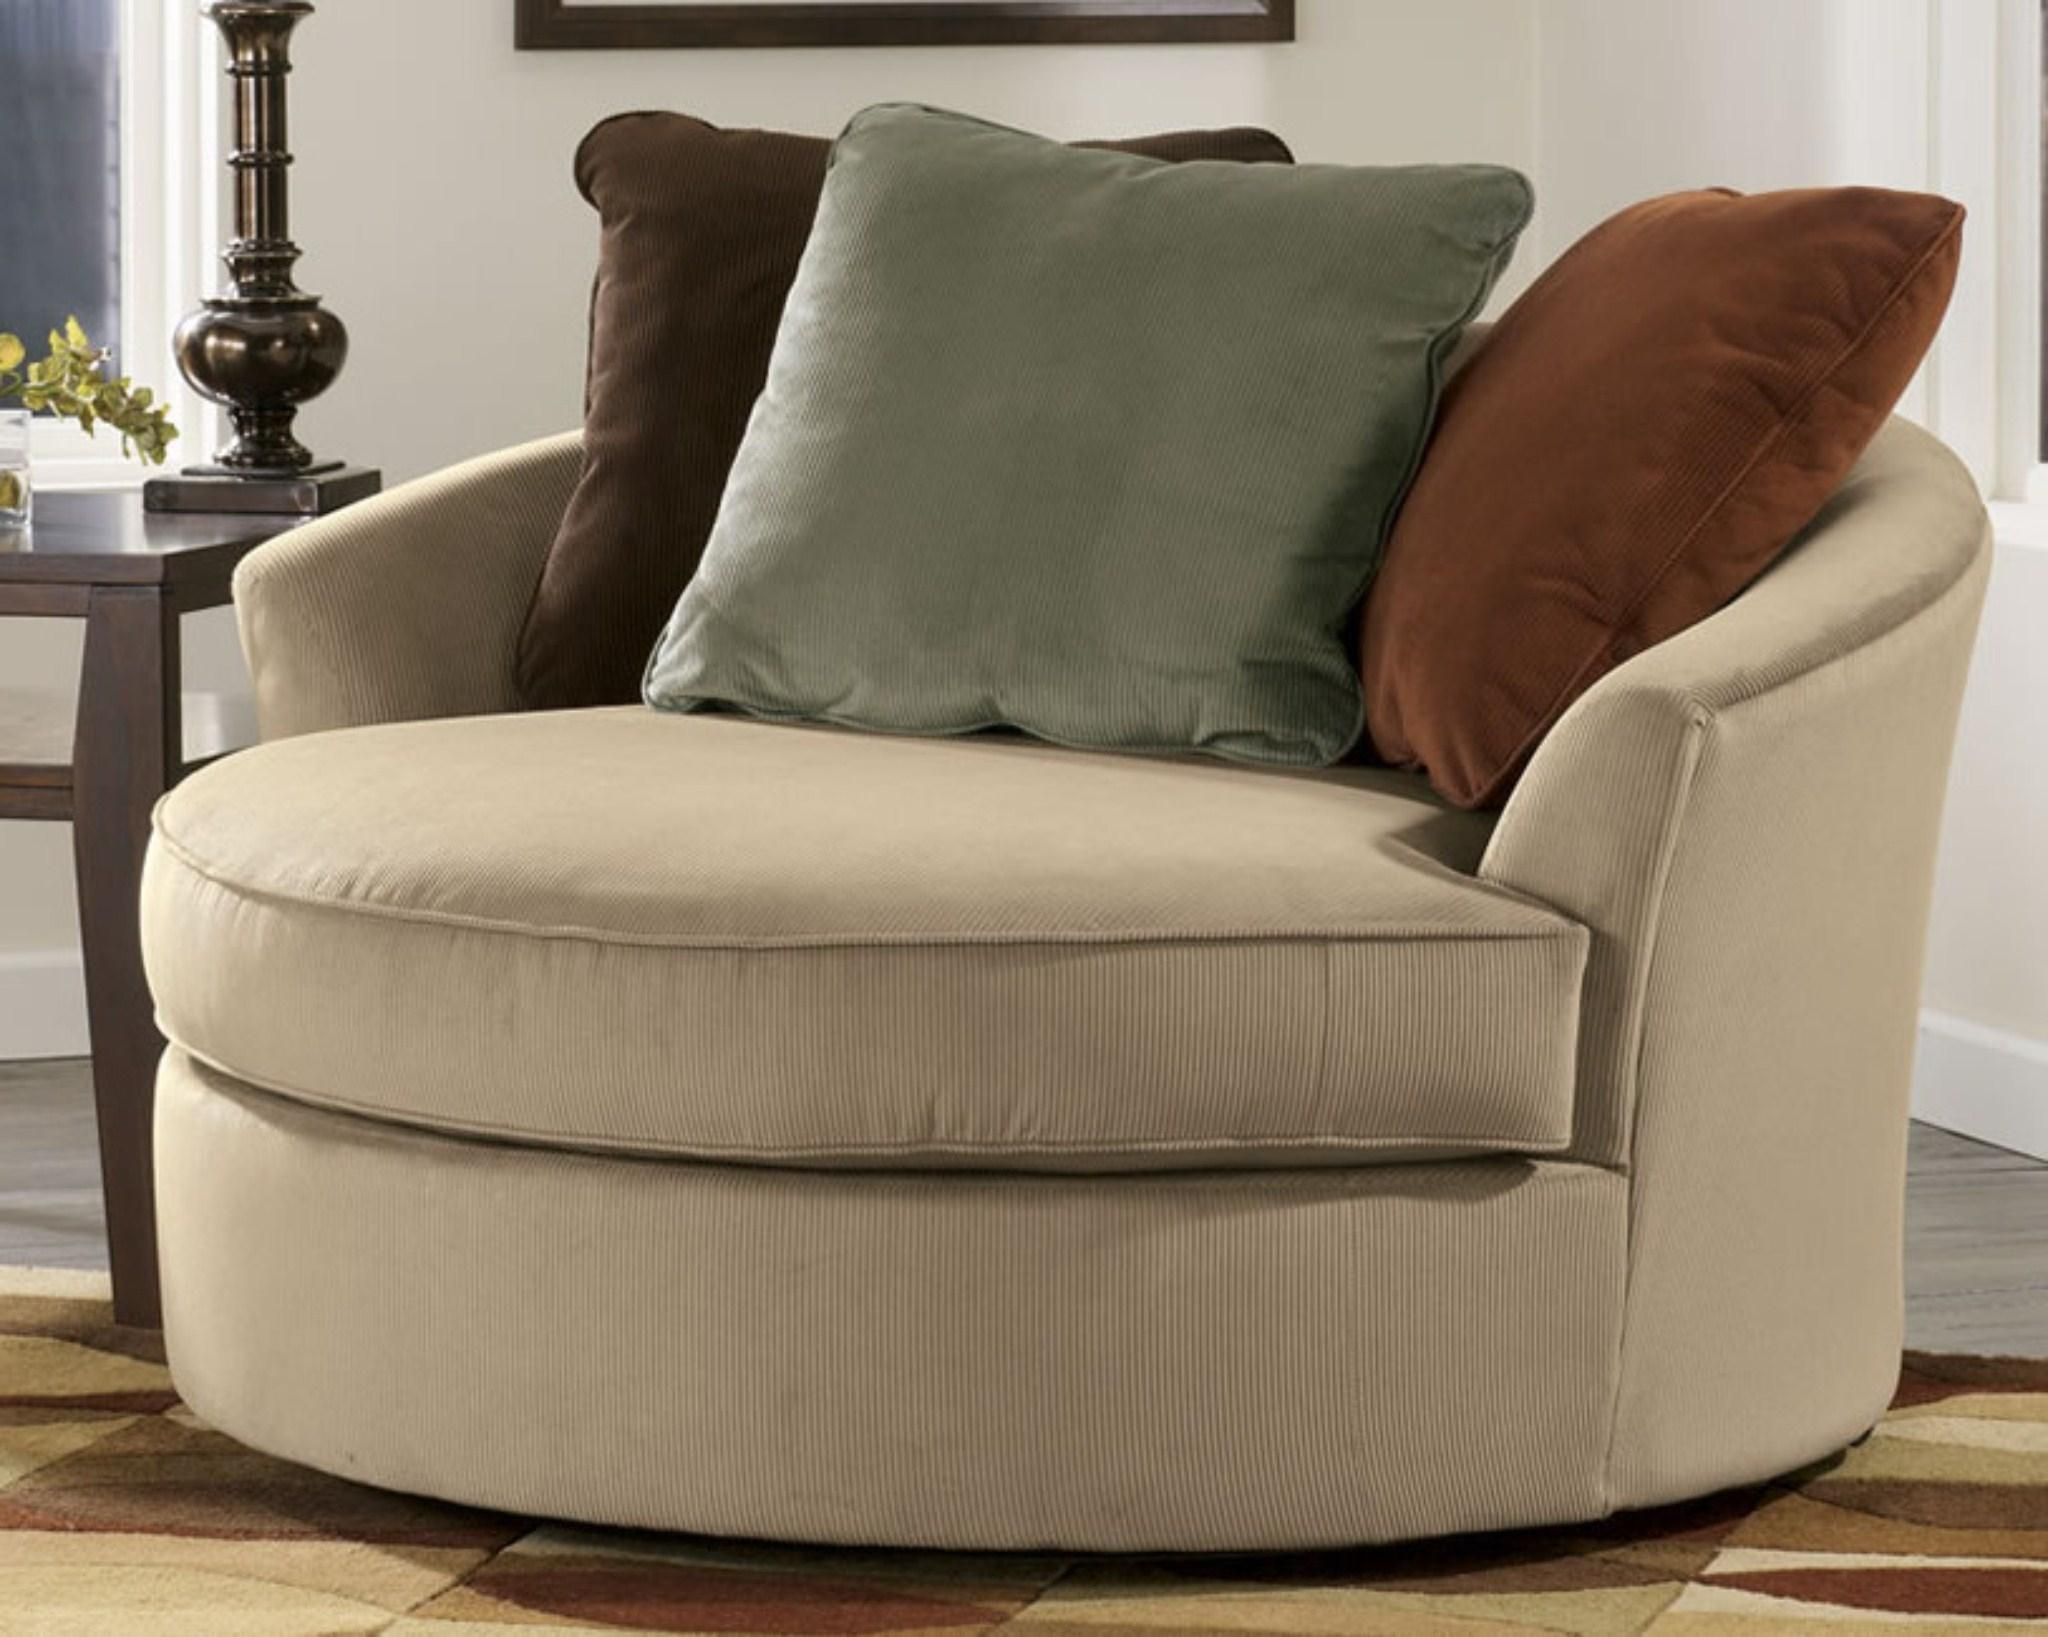 Oversized Sofa Chair | Tehranmix Decoration Intended For Wide Sofa Chairs (Image 12 of 20)